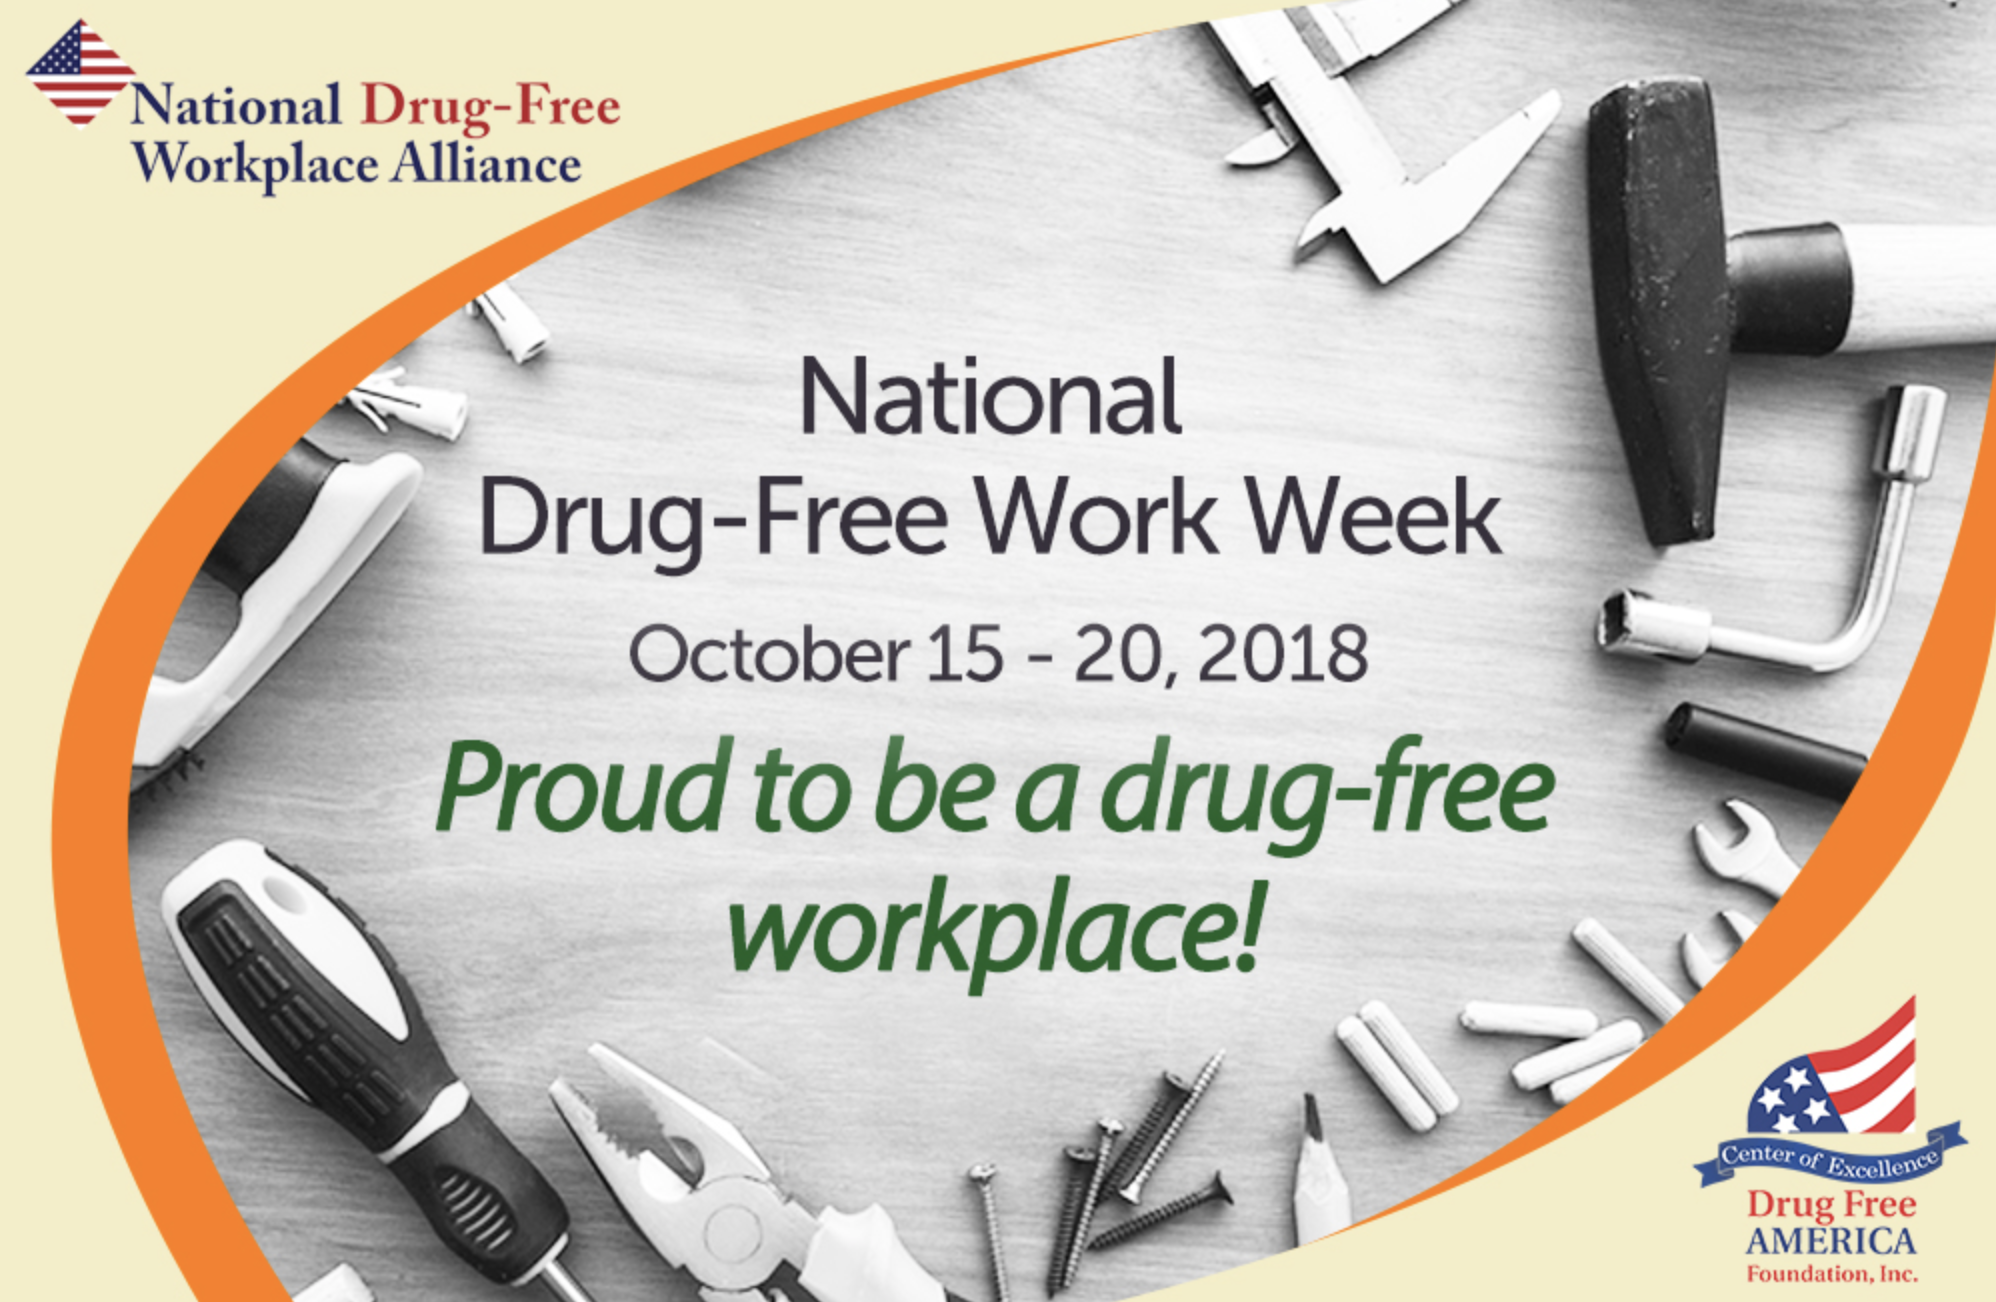 National Drug-Free Work Week